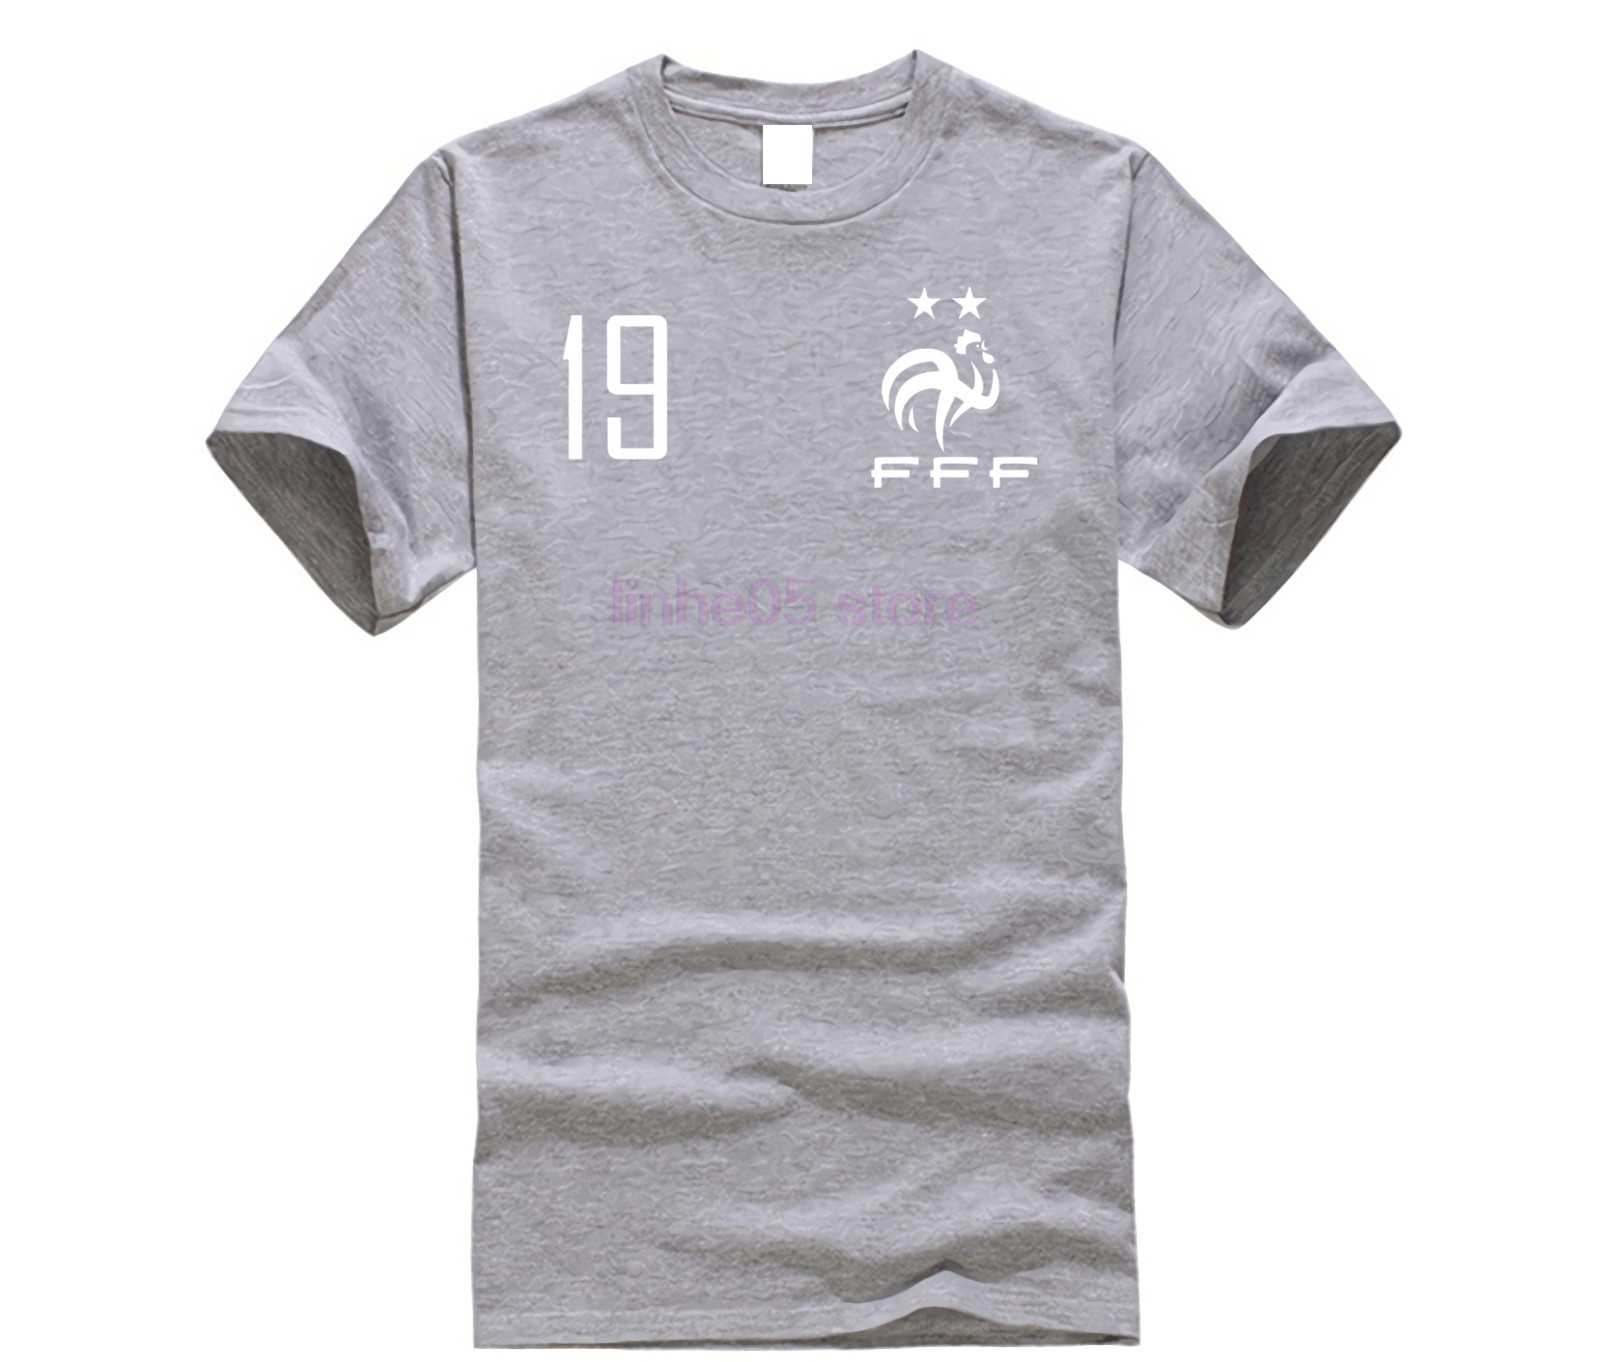 73045d7d2 ... 2019 Summer Cool Tee Shirt FRANKREICH France French Footballer Soccers 2  two stars T Shirt Funny ...